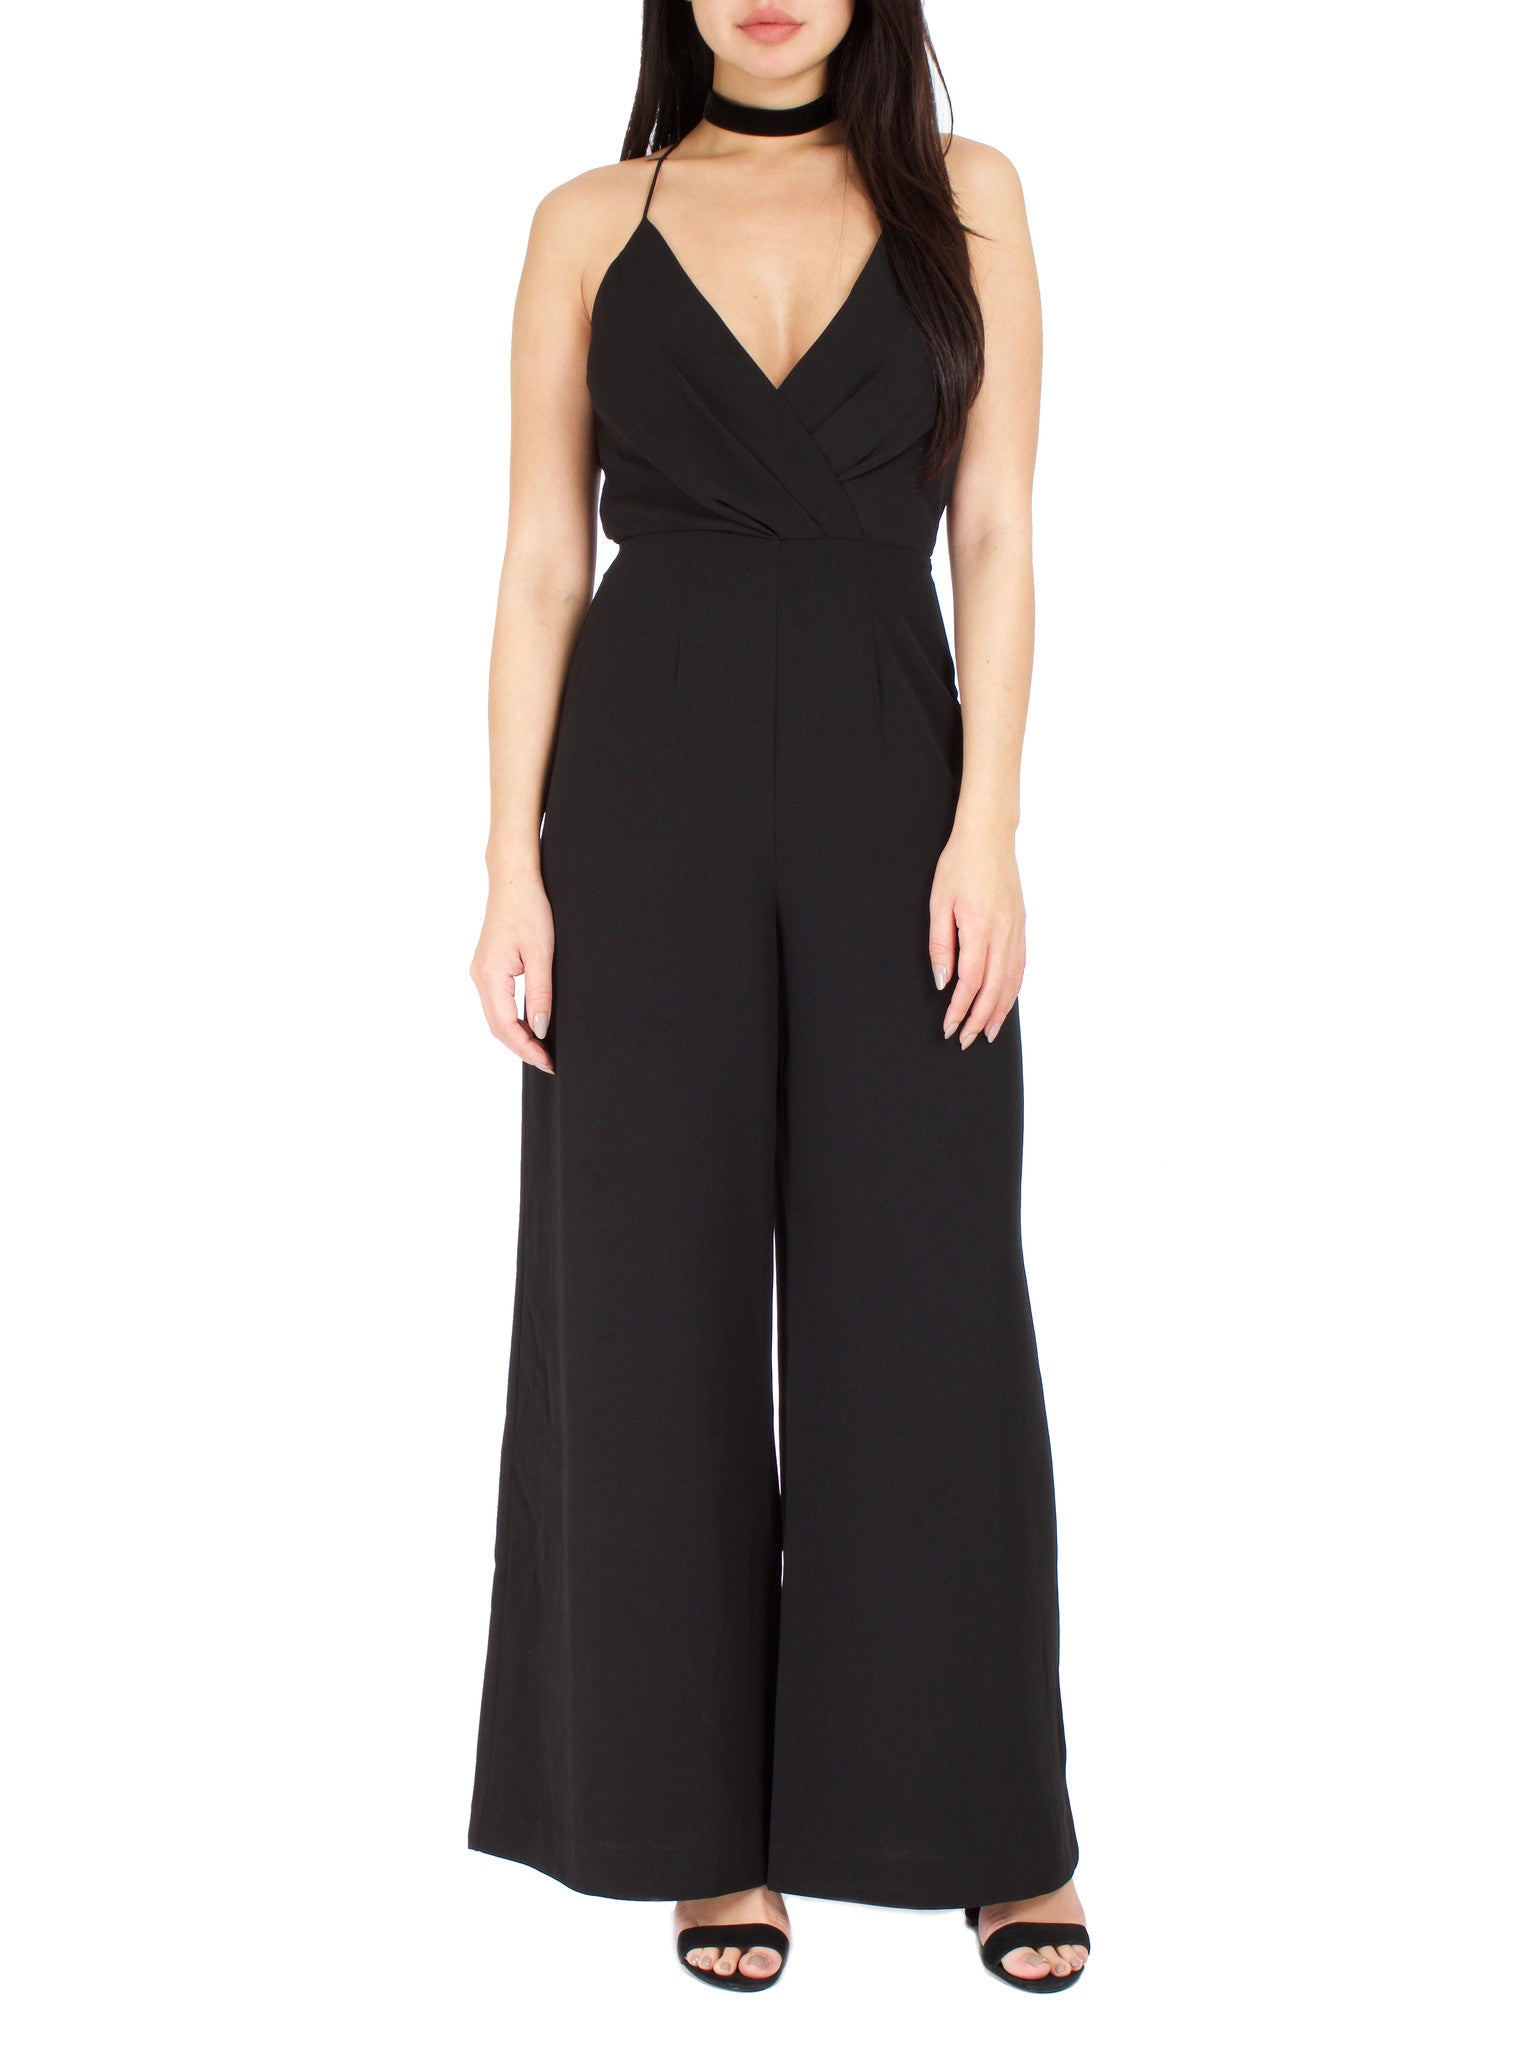 Rescue Me Jumpsuit - PRADEGAL